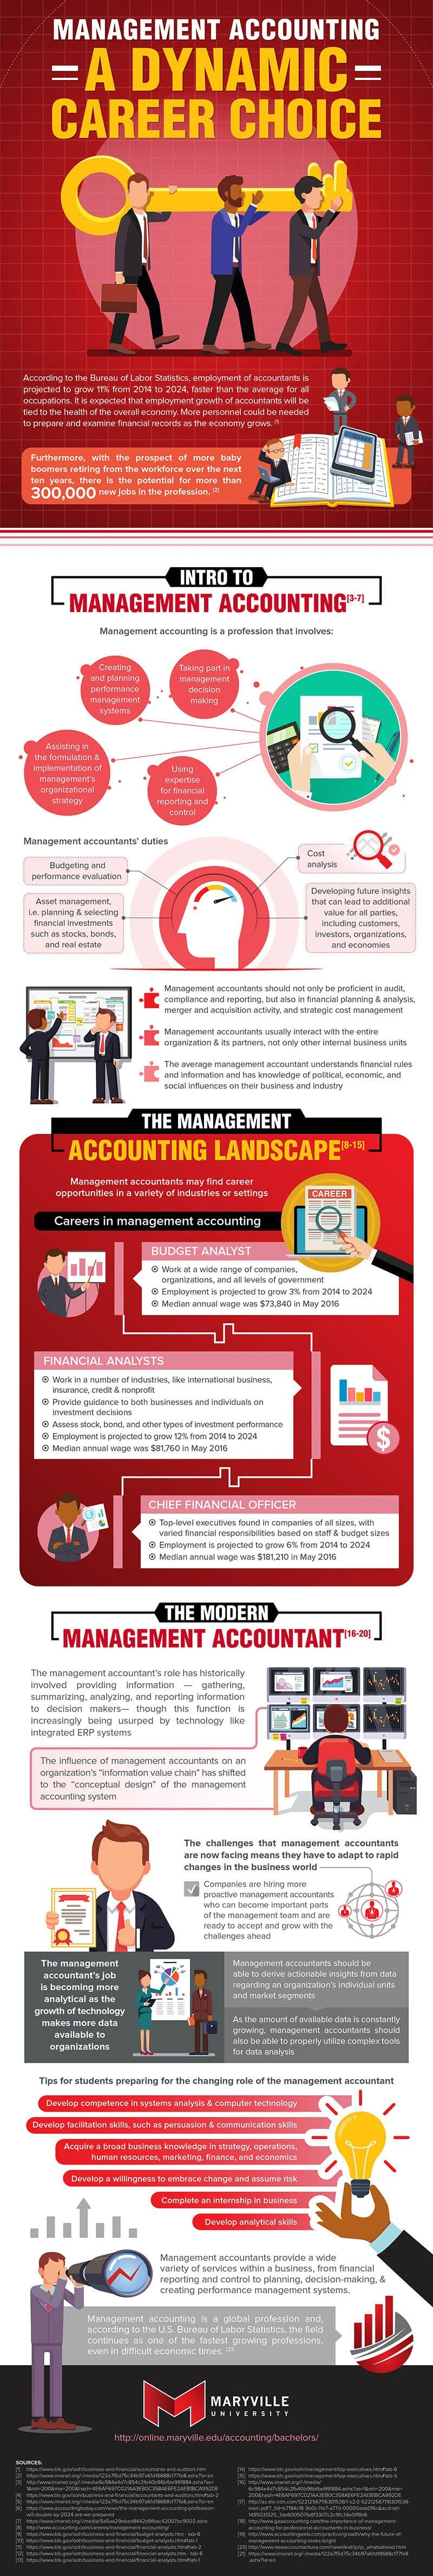 Management Accounting info